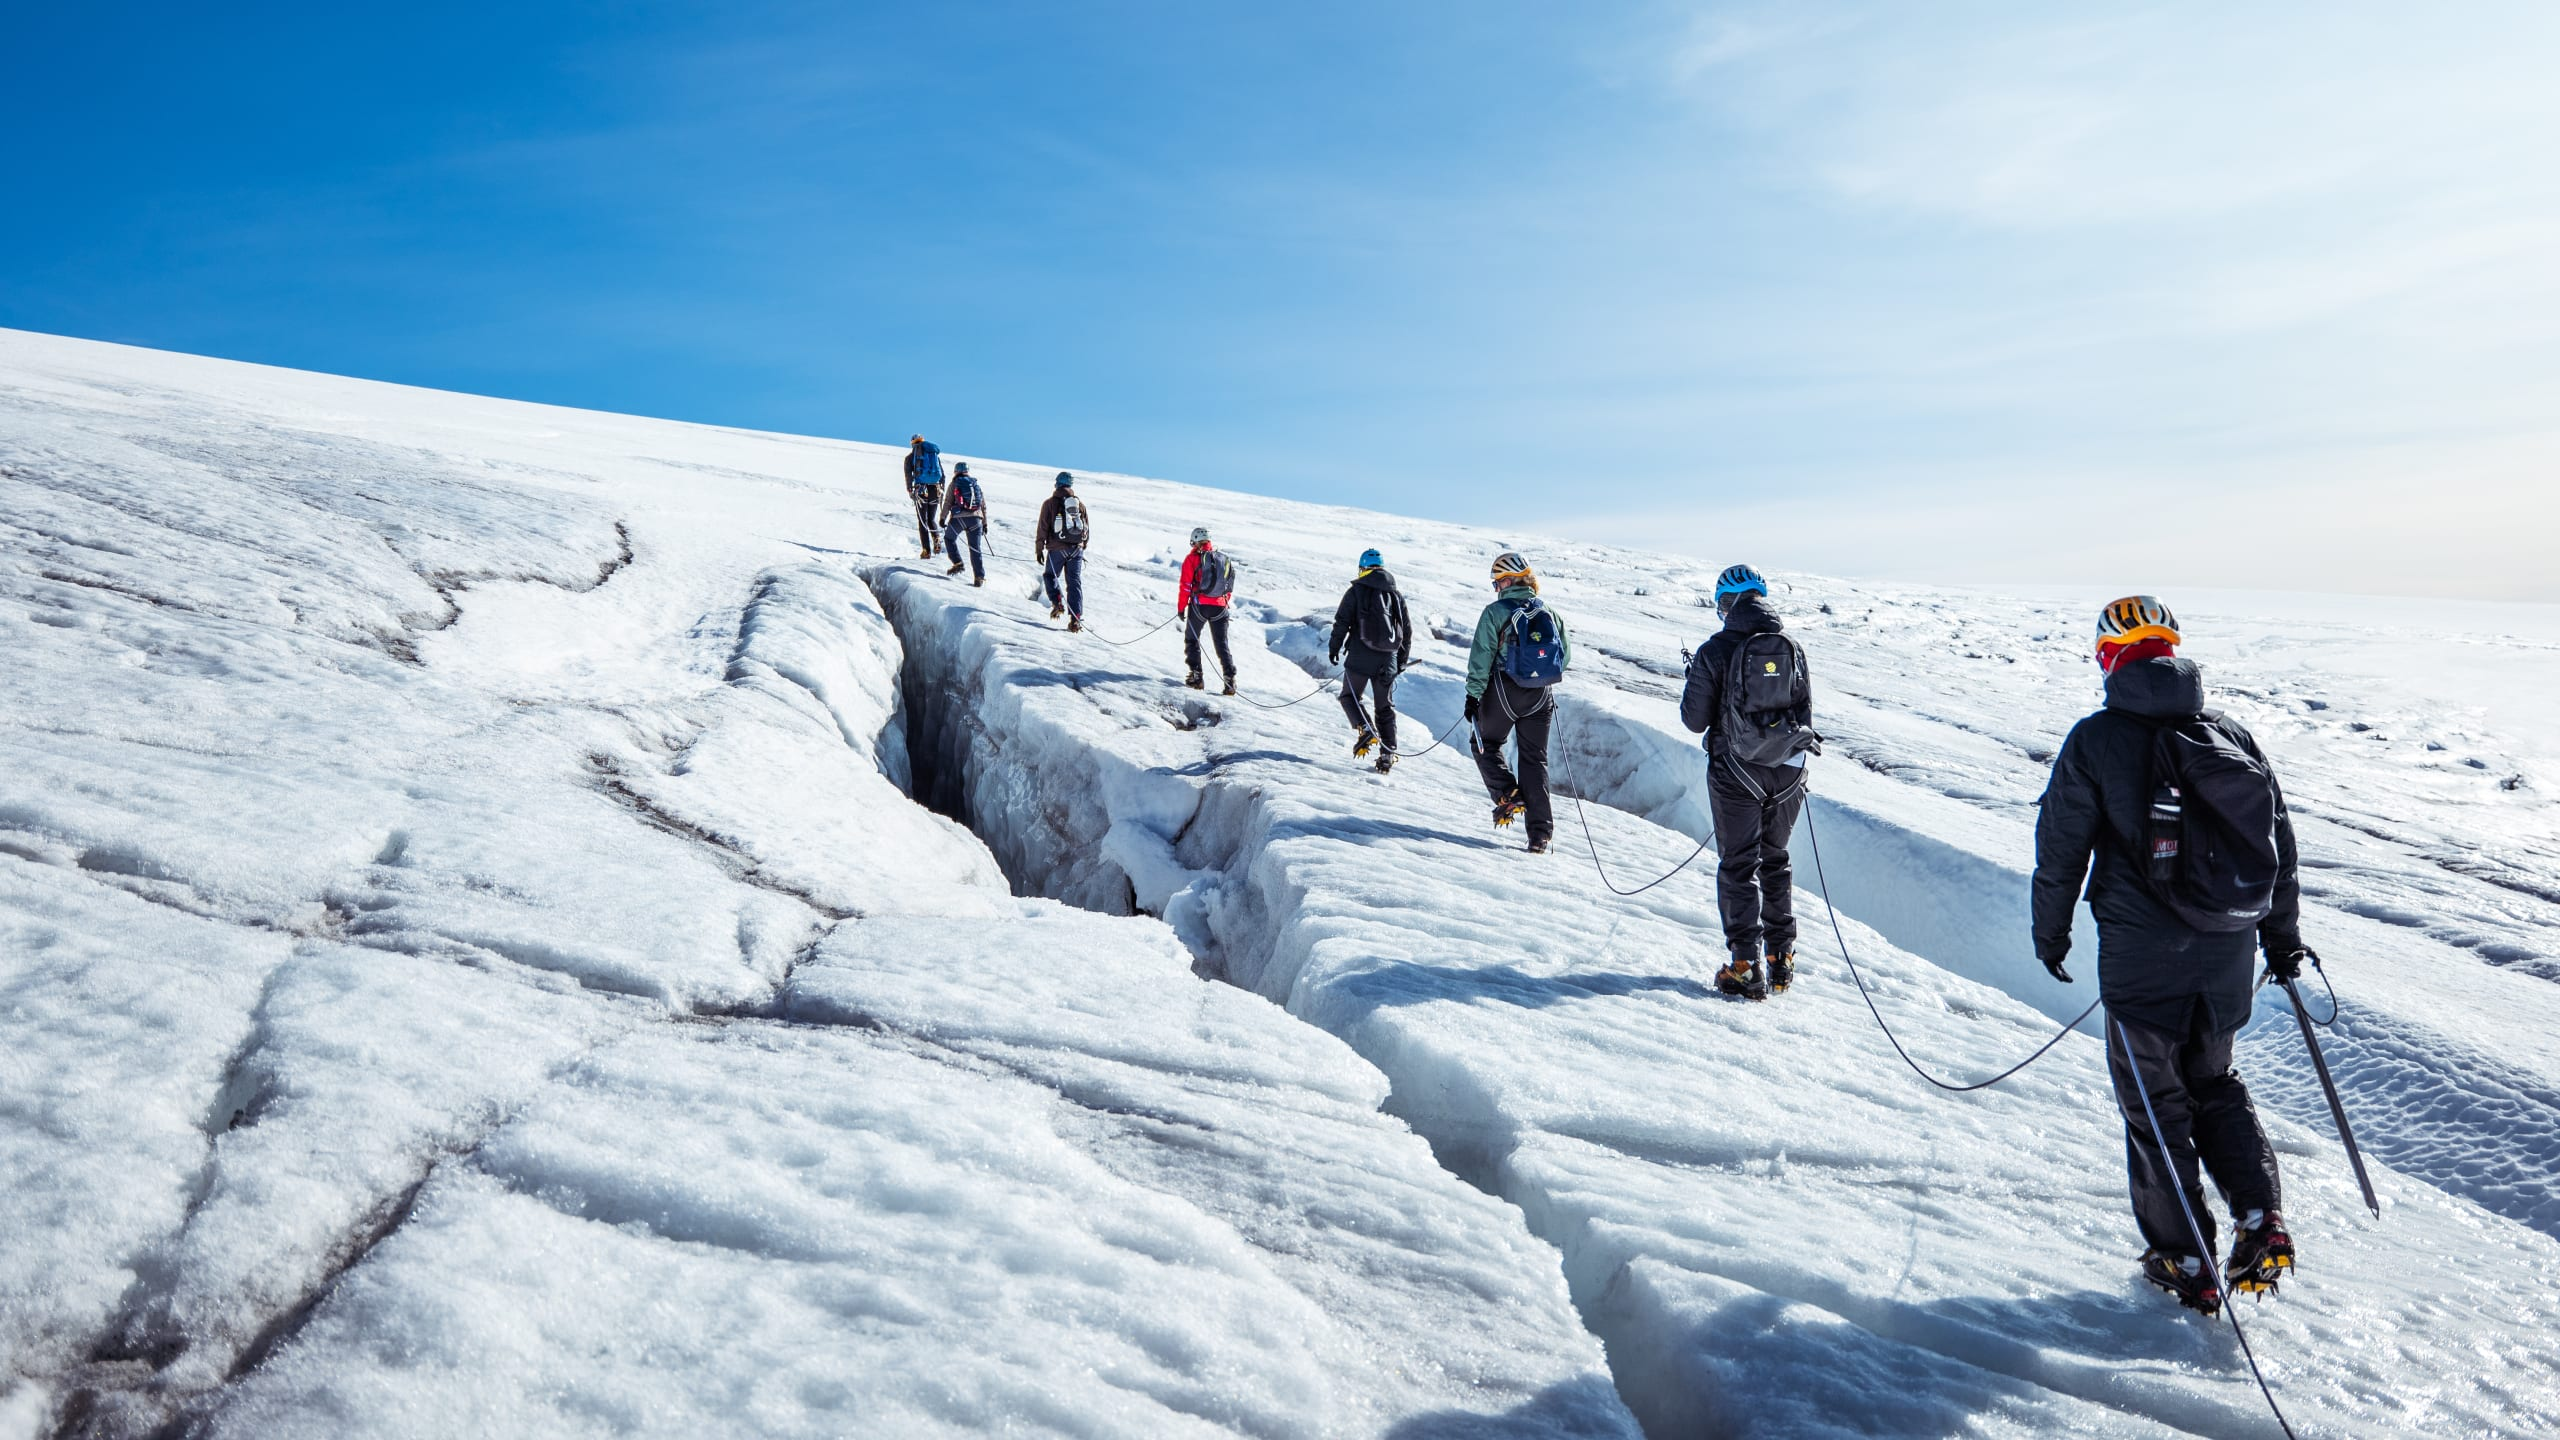 Glacier hike between deep crevasses in the ice